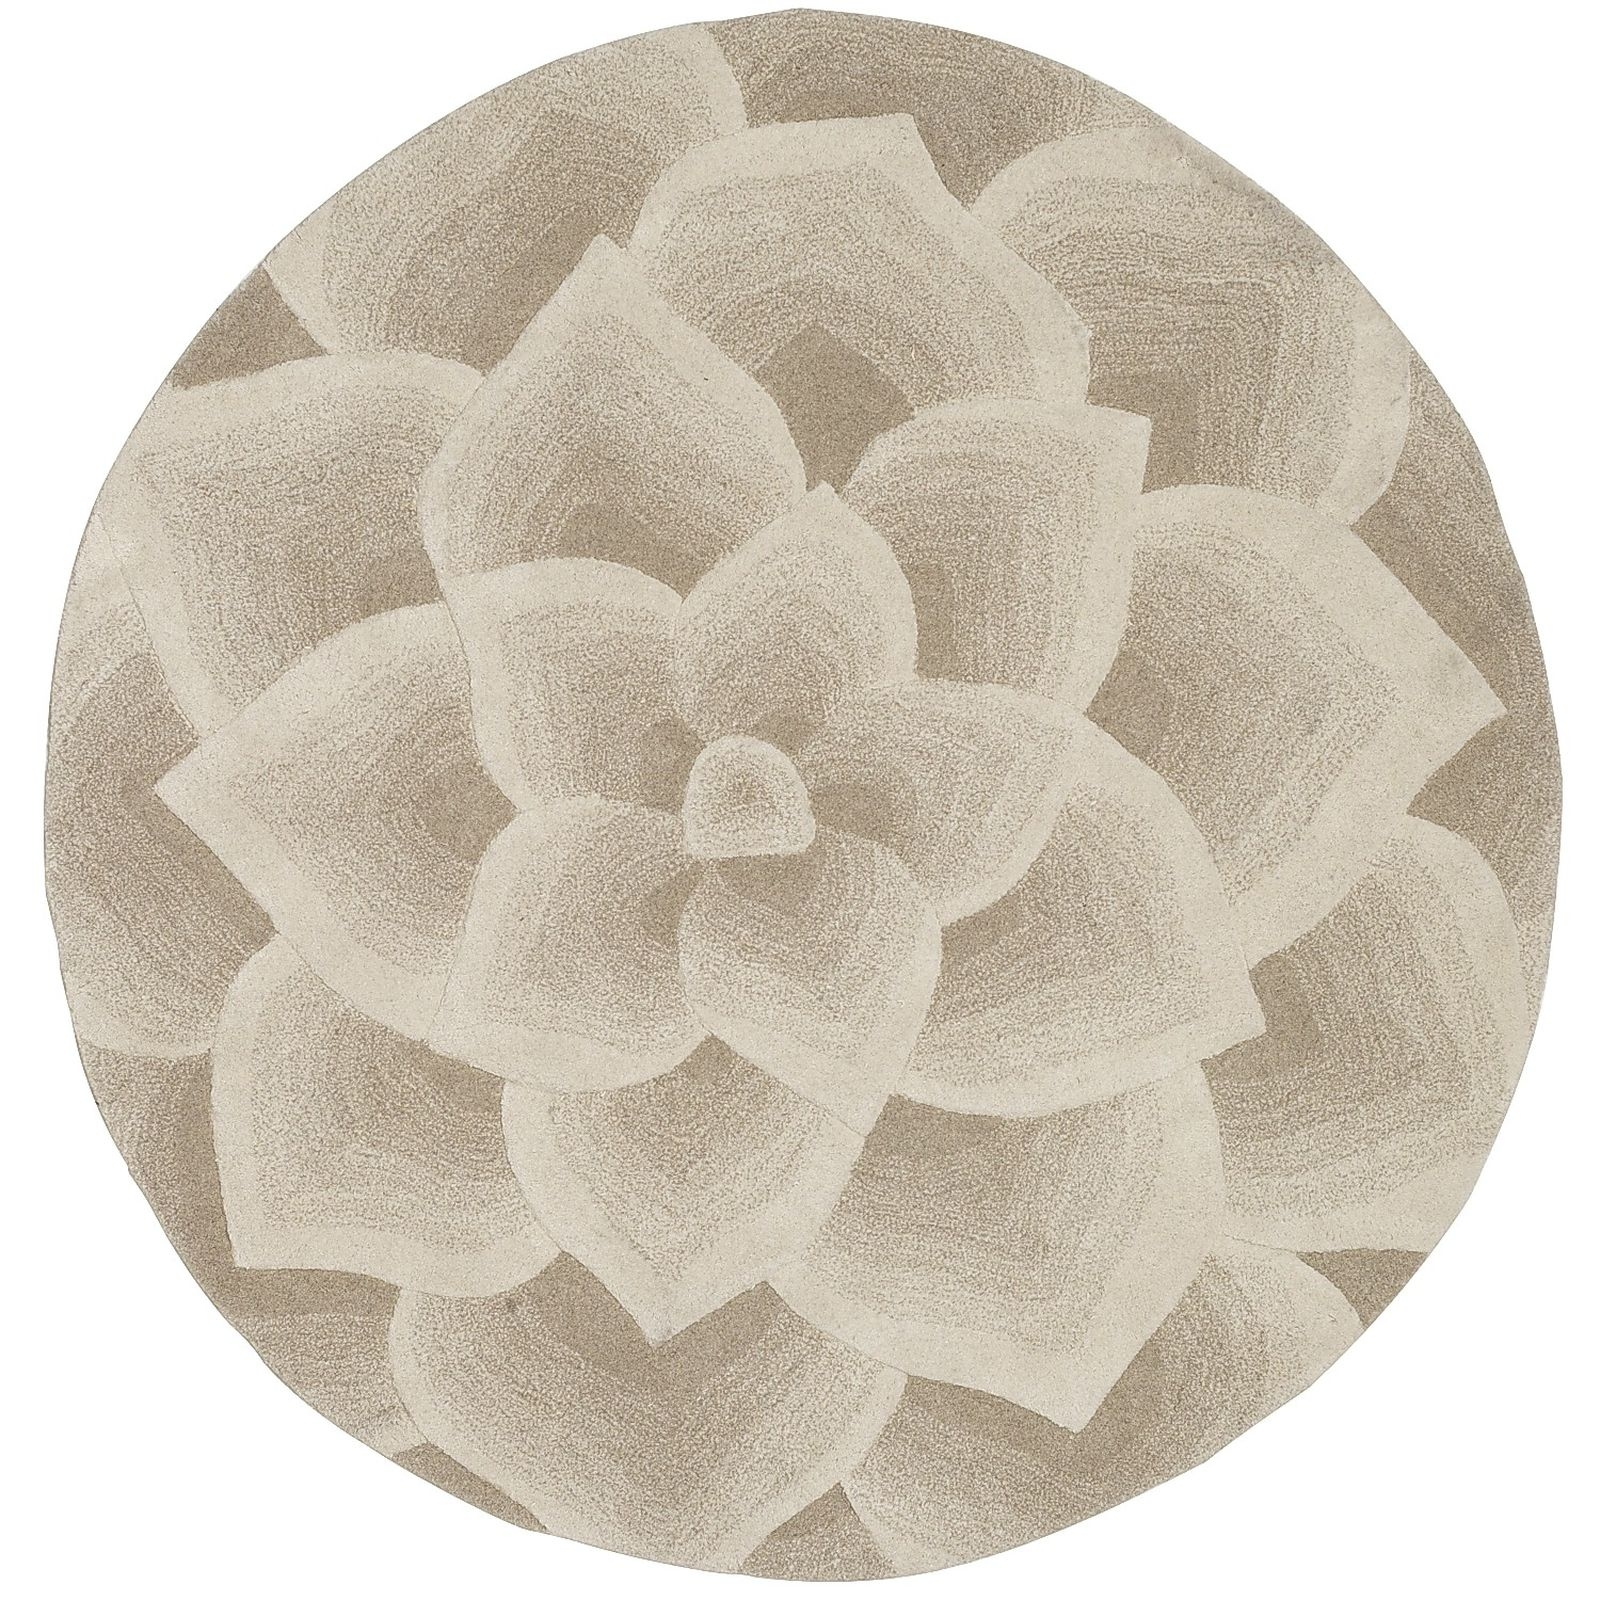 Round Rugs Cheap Cievi Home Within Round Mats Rugs (Image 12 of 15)